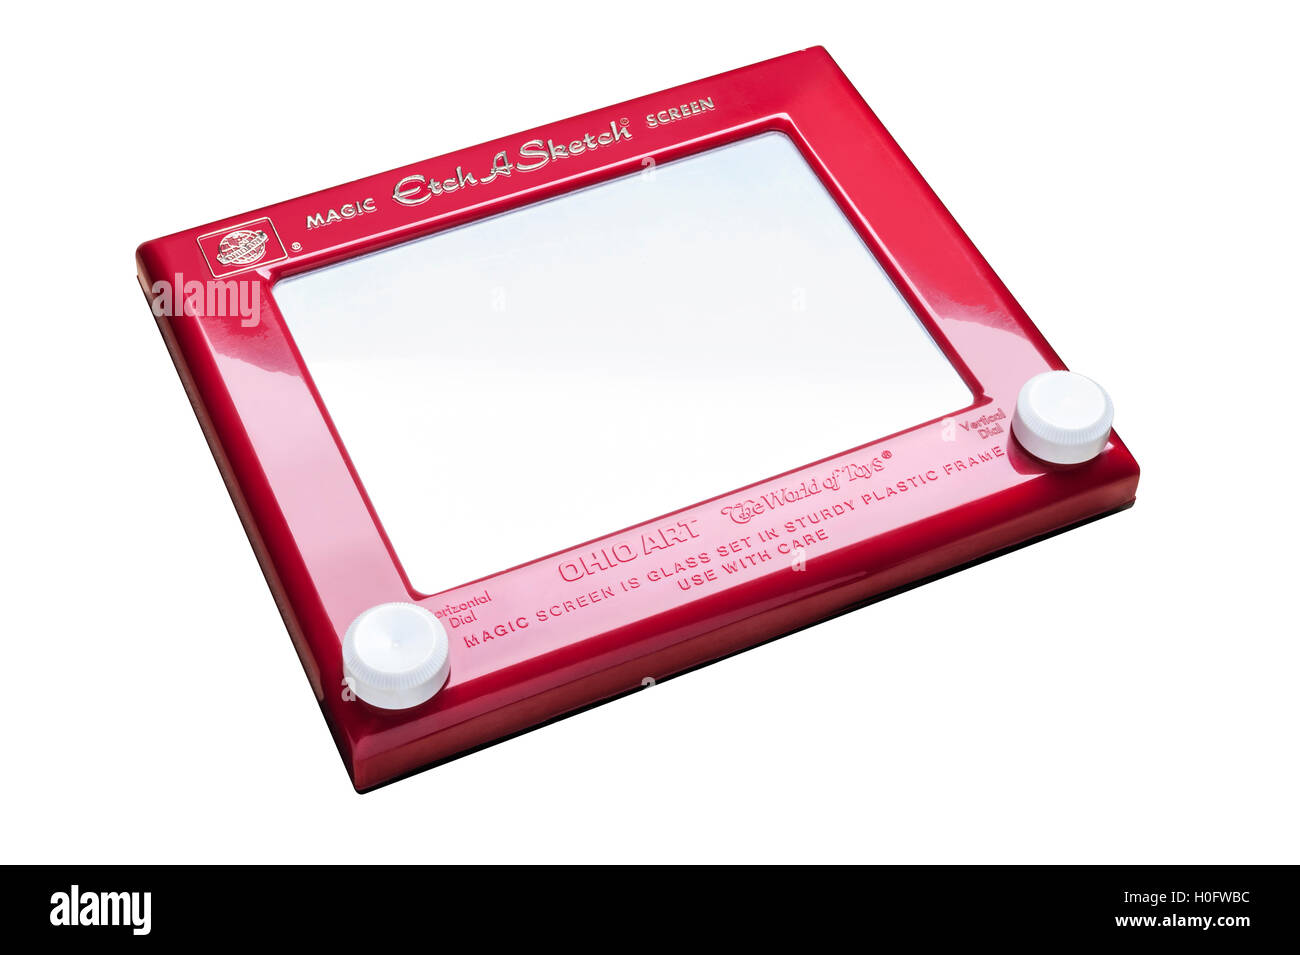 Vintage retro Etch a Sketch drawing toy - Stock Image